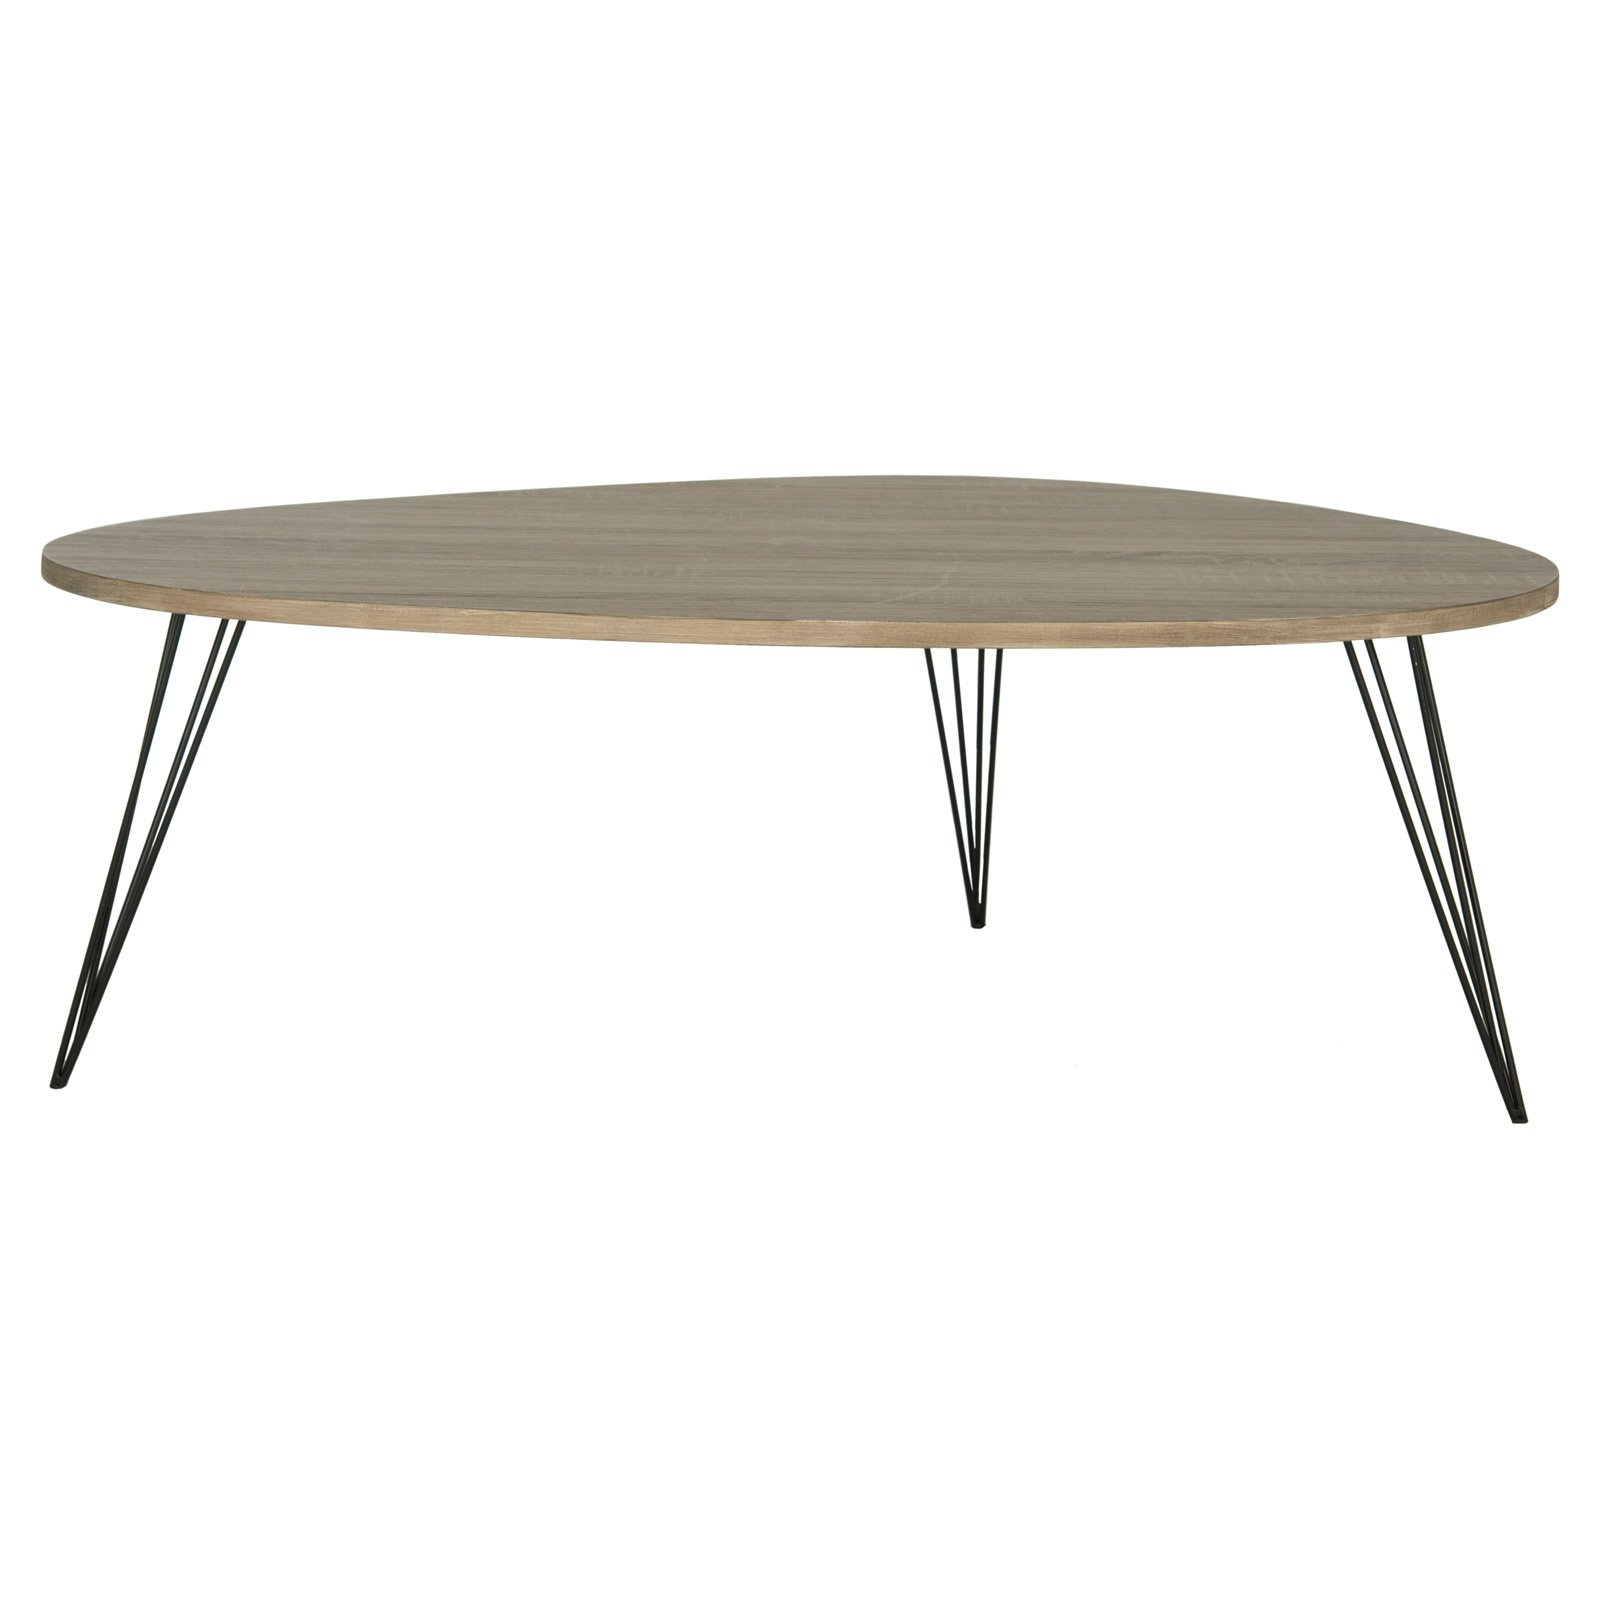 """Current Safavieh Mid Century Wynton White Black Lacquer Modern Coffee Tables Regarding Safavieh Wynton 44"""" Width Retro Mid Century Lacquer Coffee Table, Multiple Colors (View 7 of 20)"""